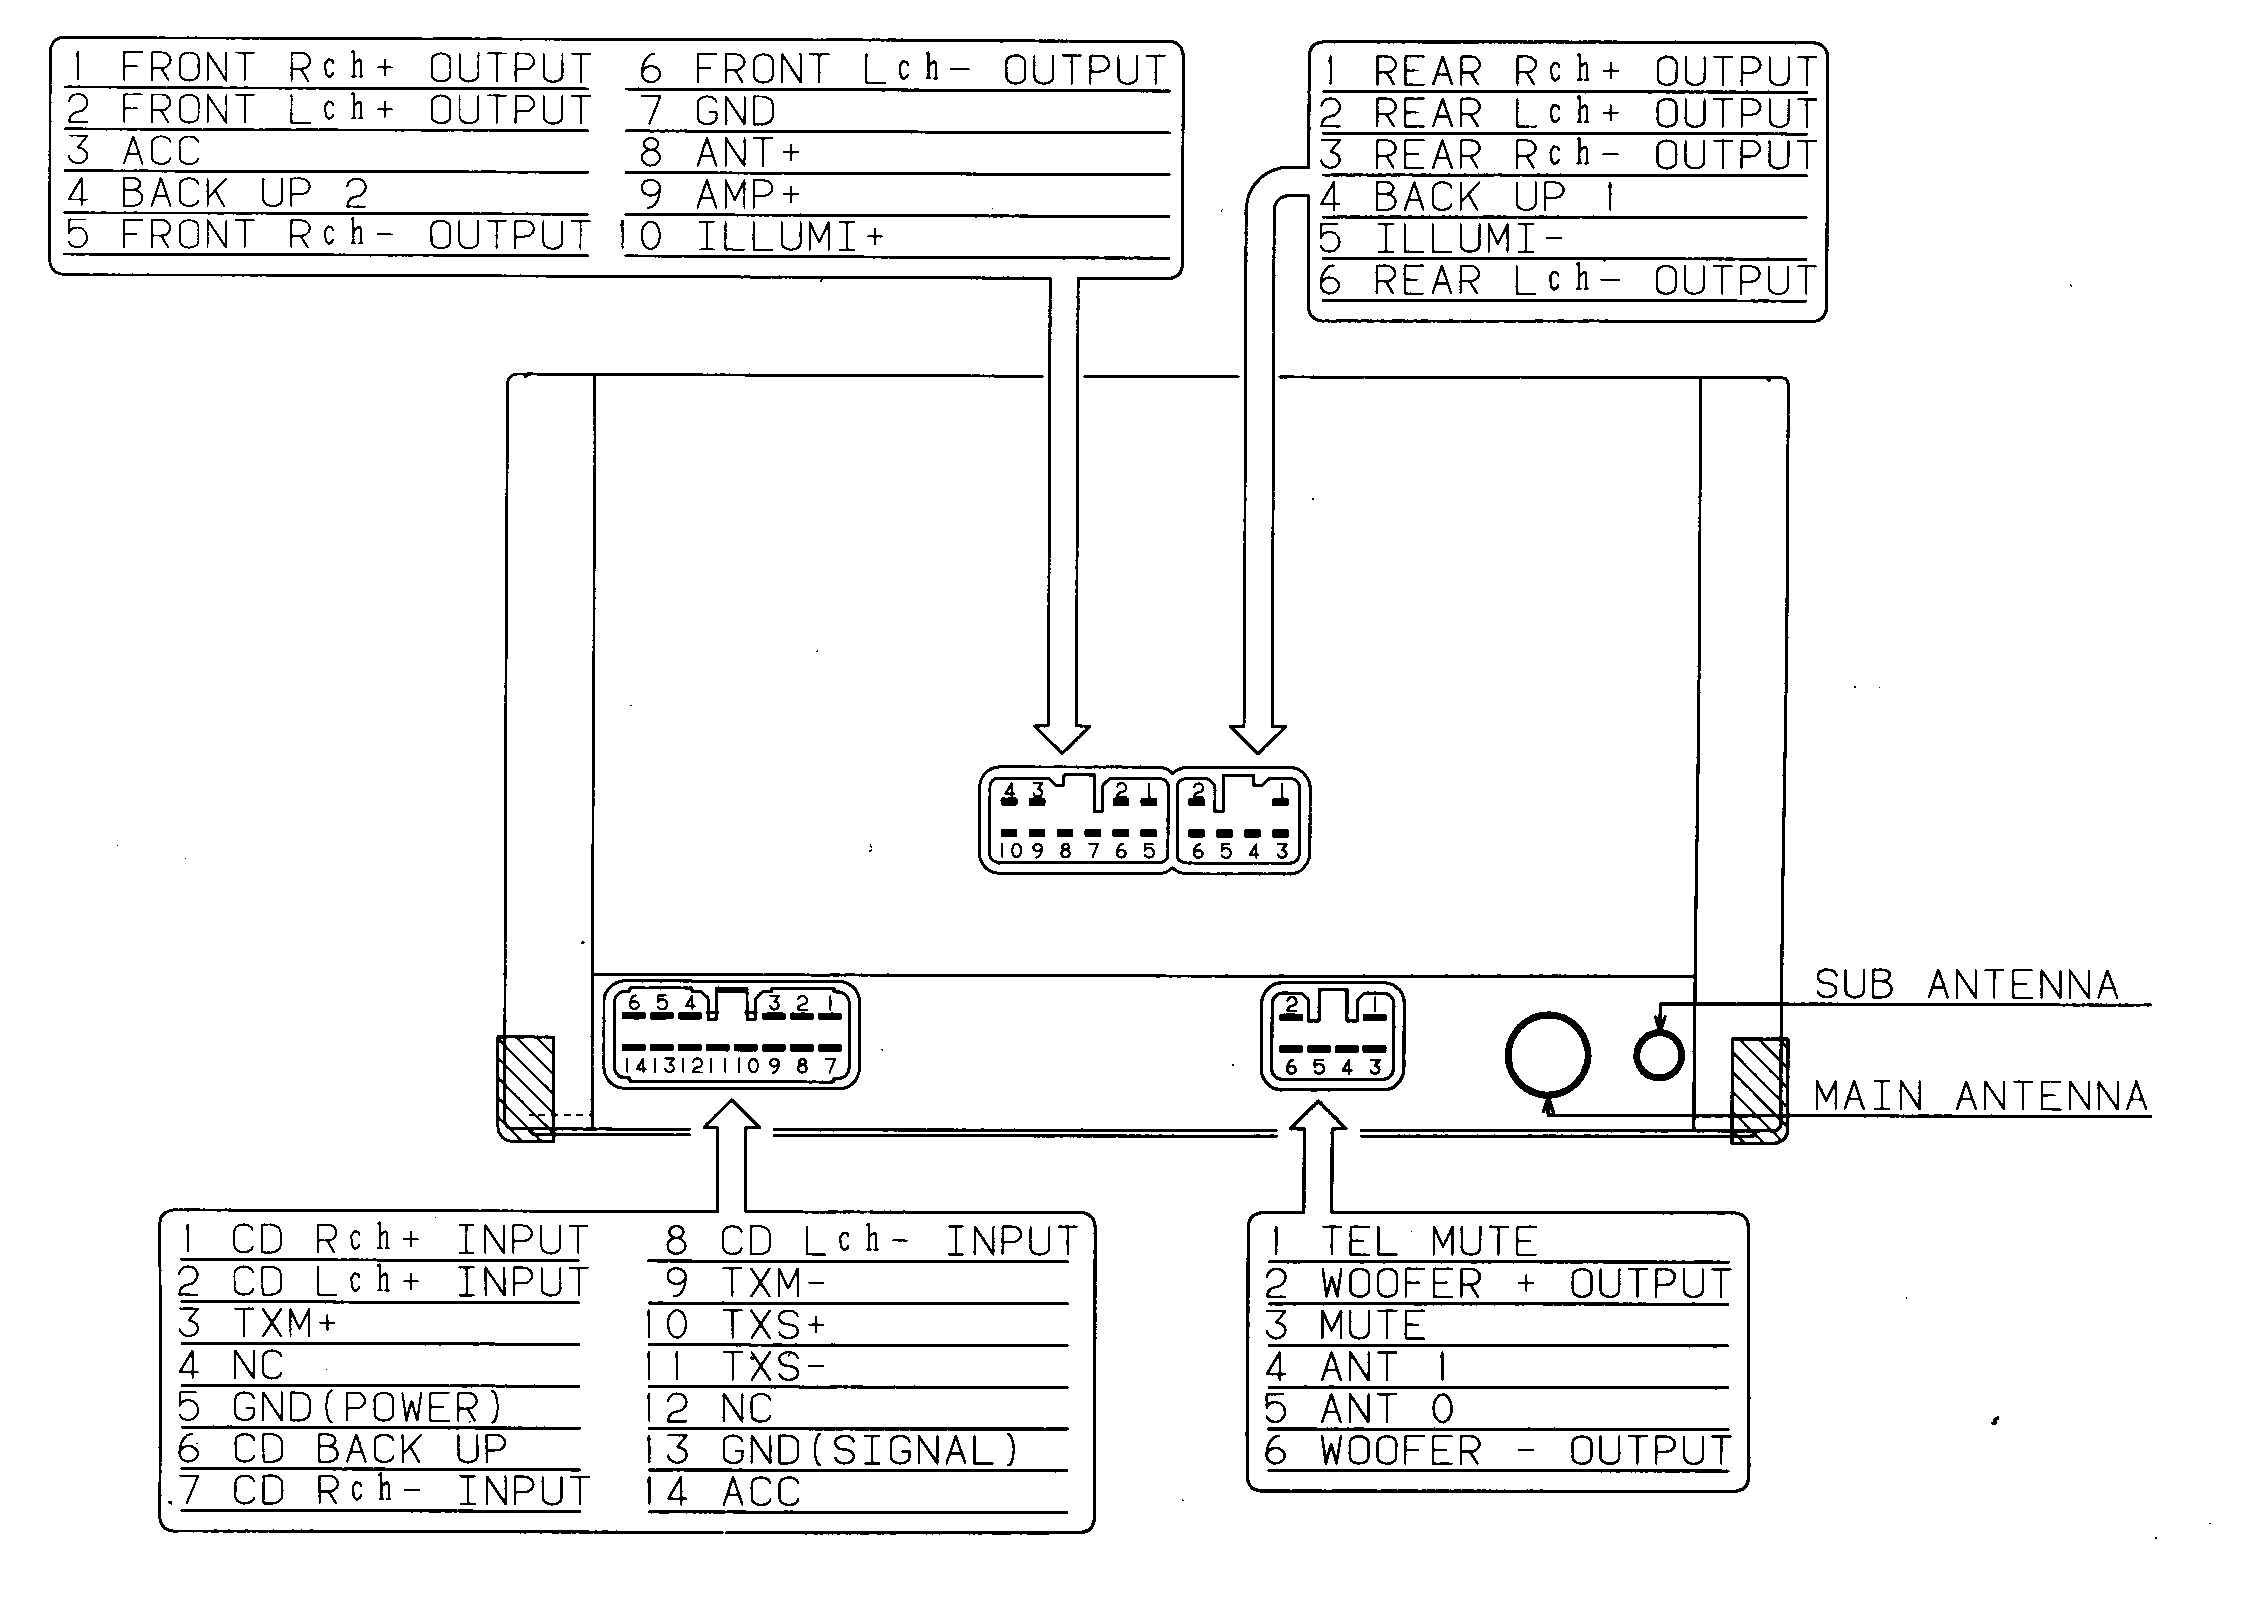 Lexus car stereo wiring diagram harness pinout connector wire nissan almera ecu pinout nissan 350z wiring diagram with  at bayanpartner.co